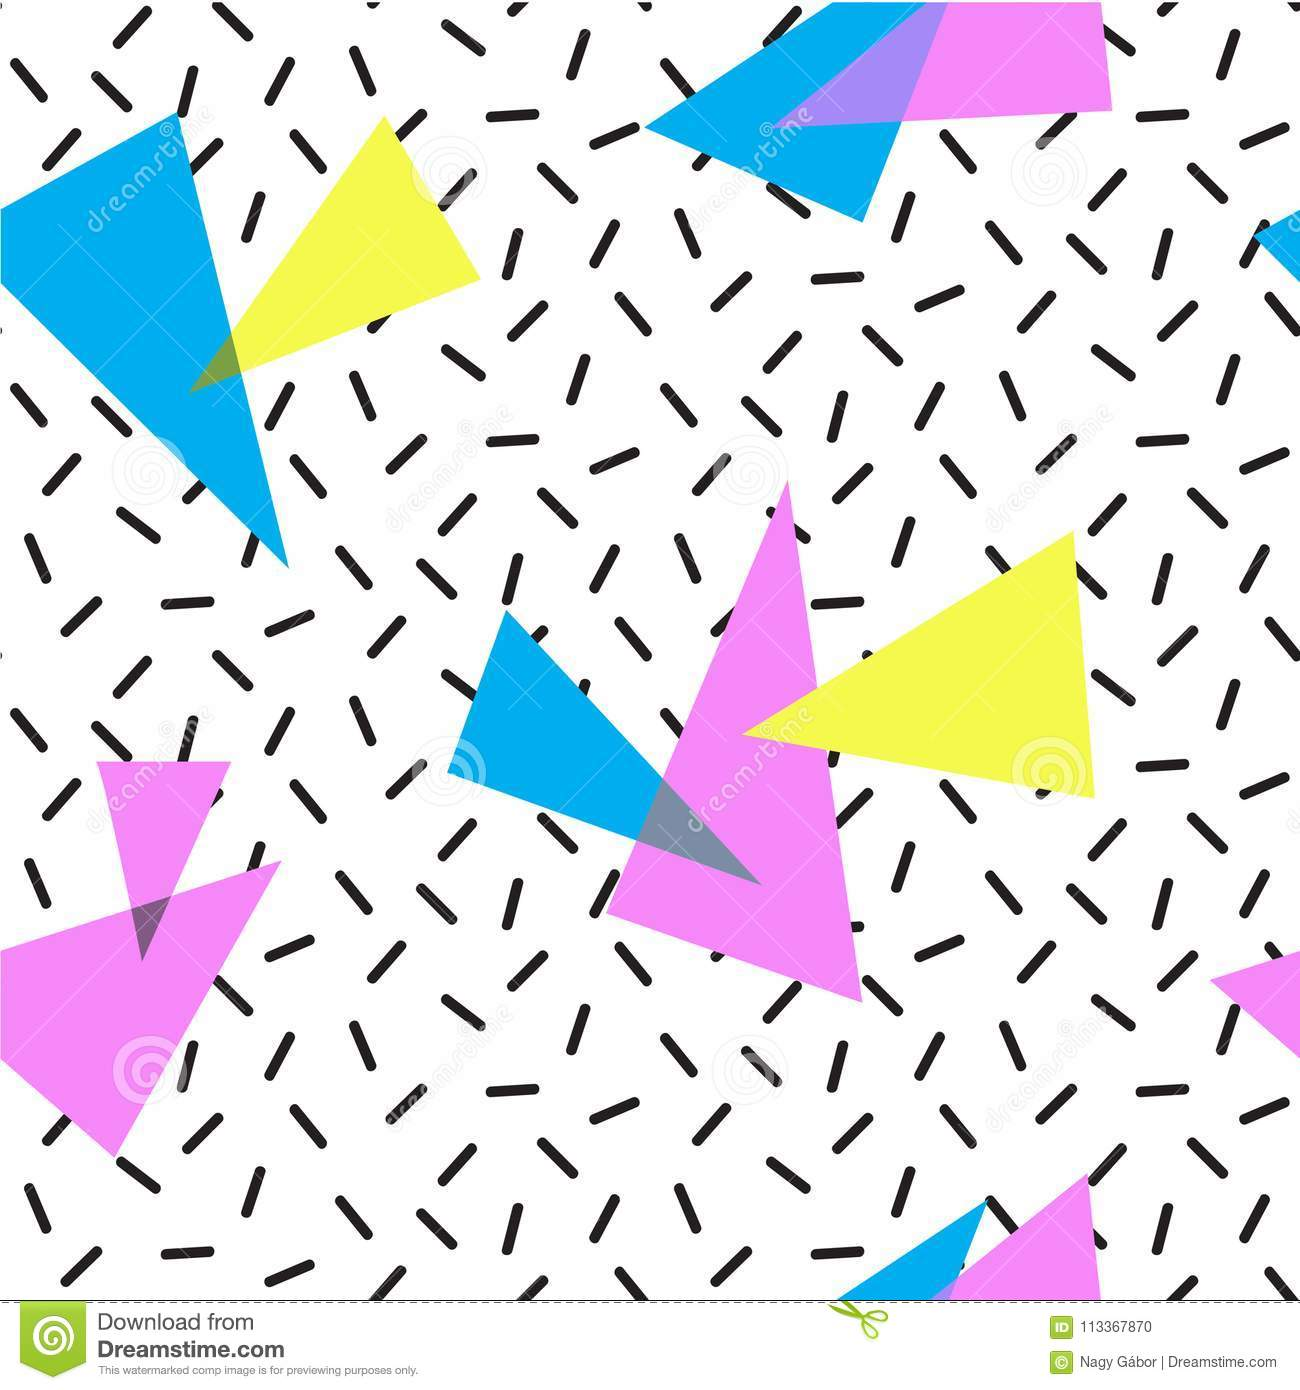 COLORED TRIANGLE MEMPHIS STYLE SEAMLESS PATTERN  GEOMETRIC